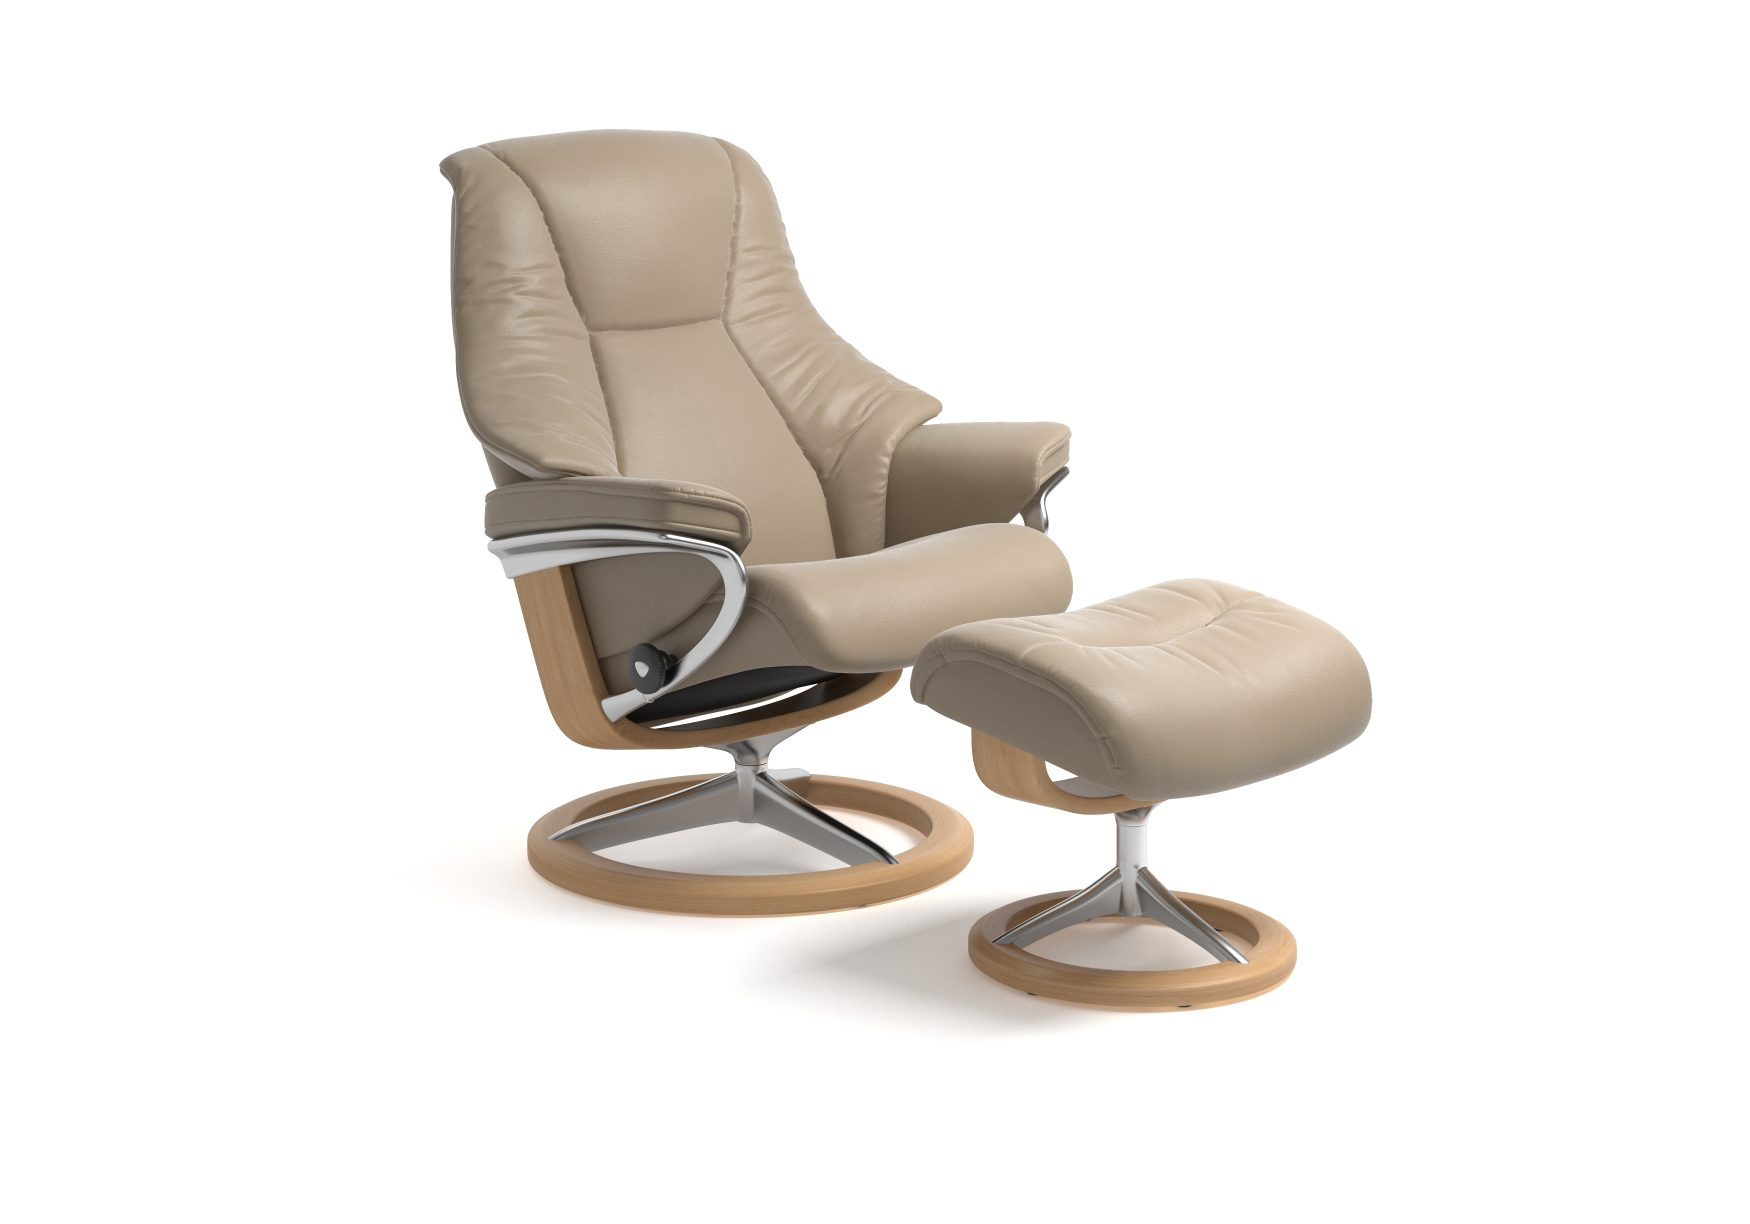 Stressless Sessel Mit Hocker Möbel Busch Möbel A Z Sessel Hocker Ledersessel